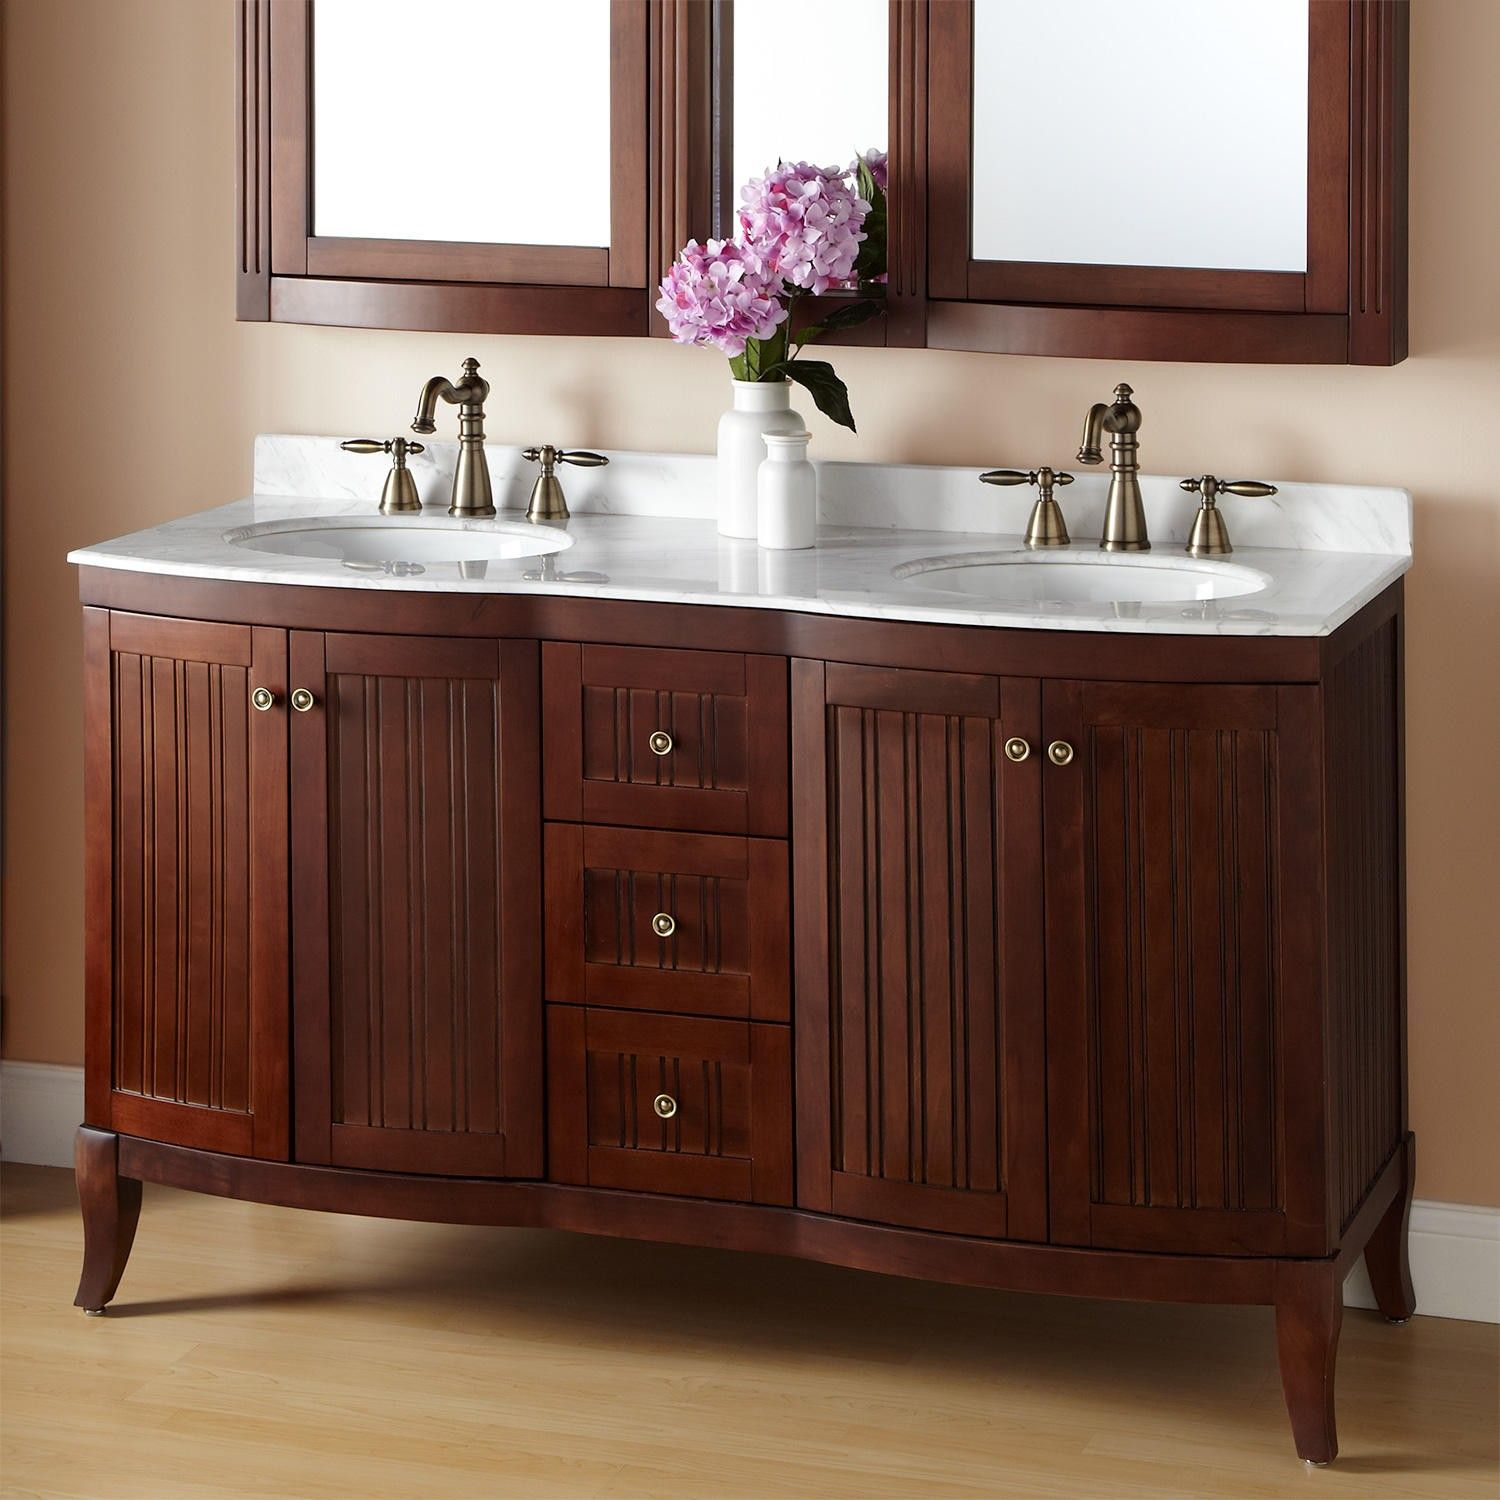 26+ Home depot double sink inspiration